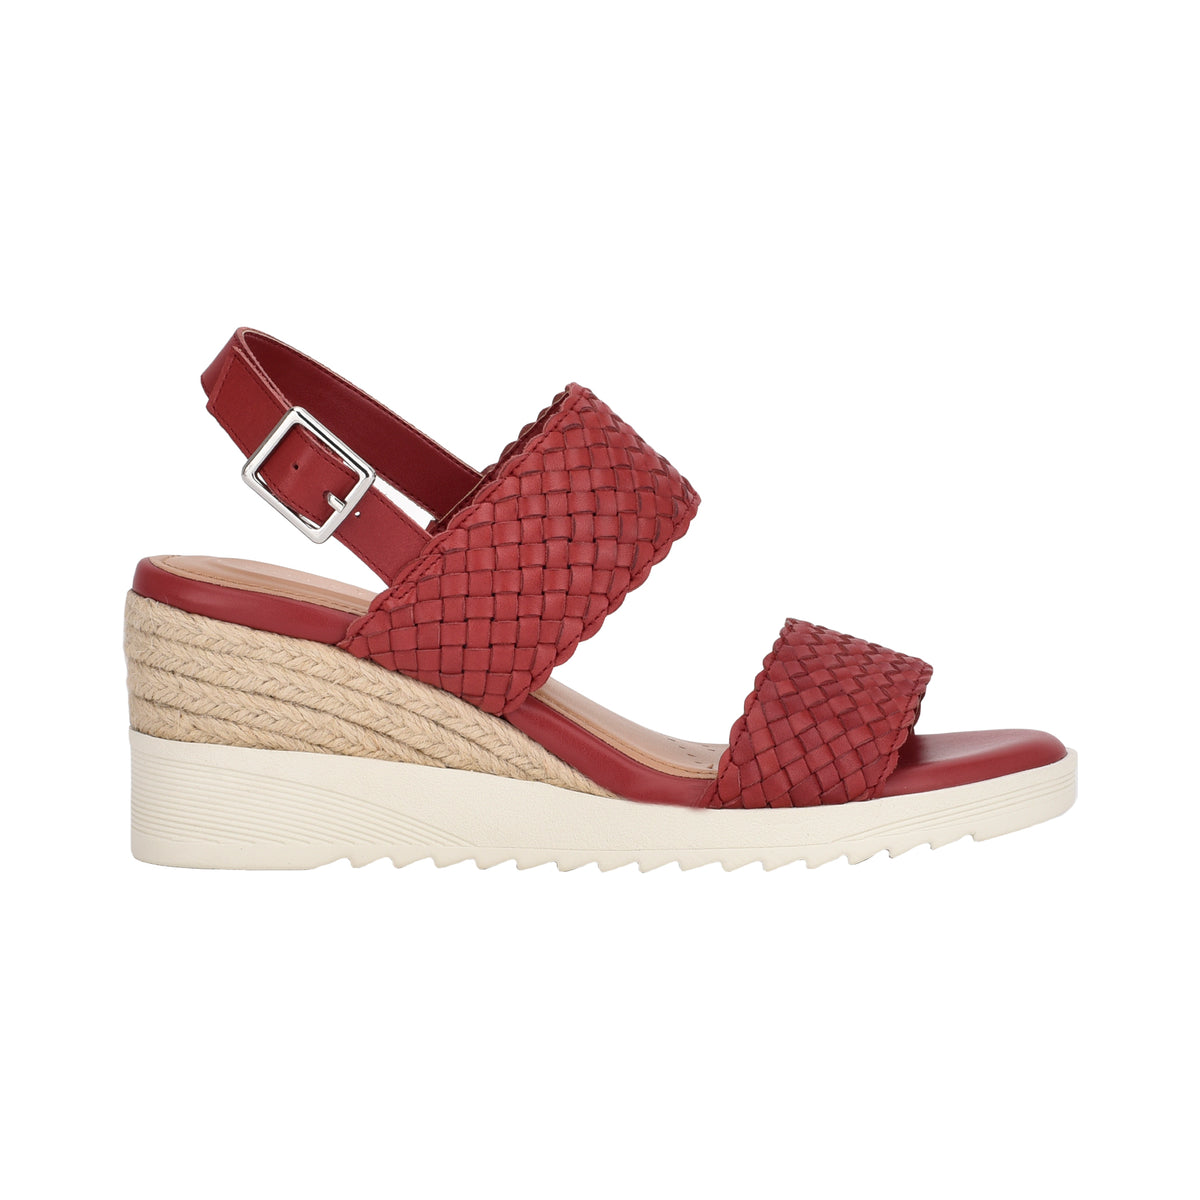 zola-espadrille-wedge-sandals-in-red-leather